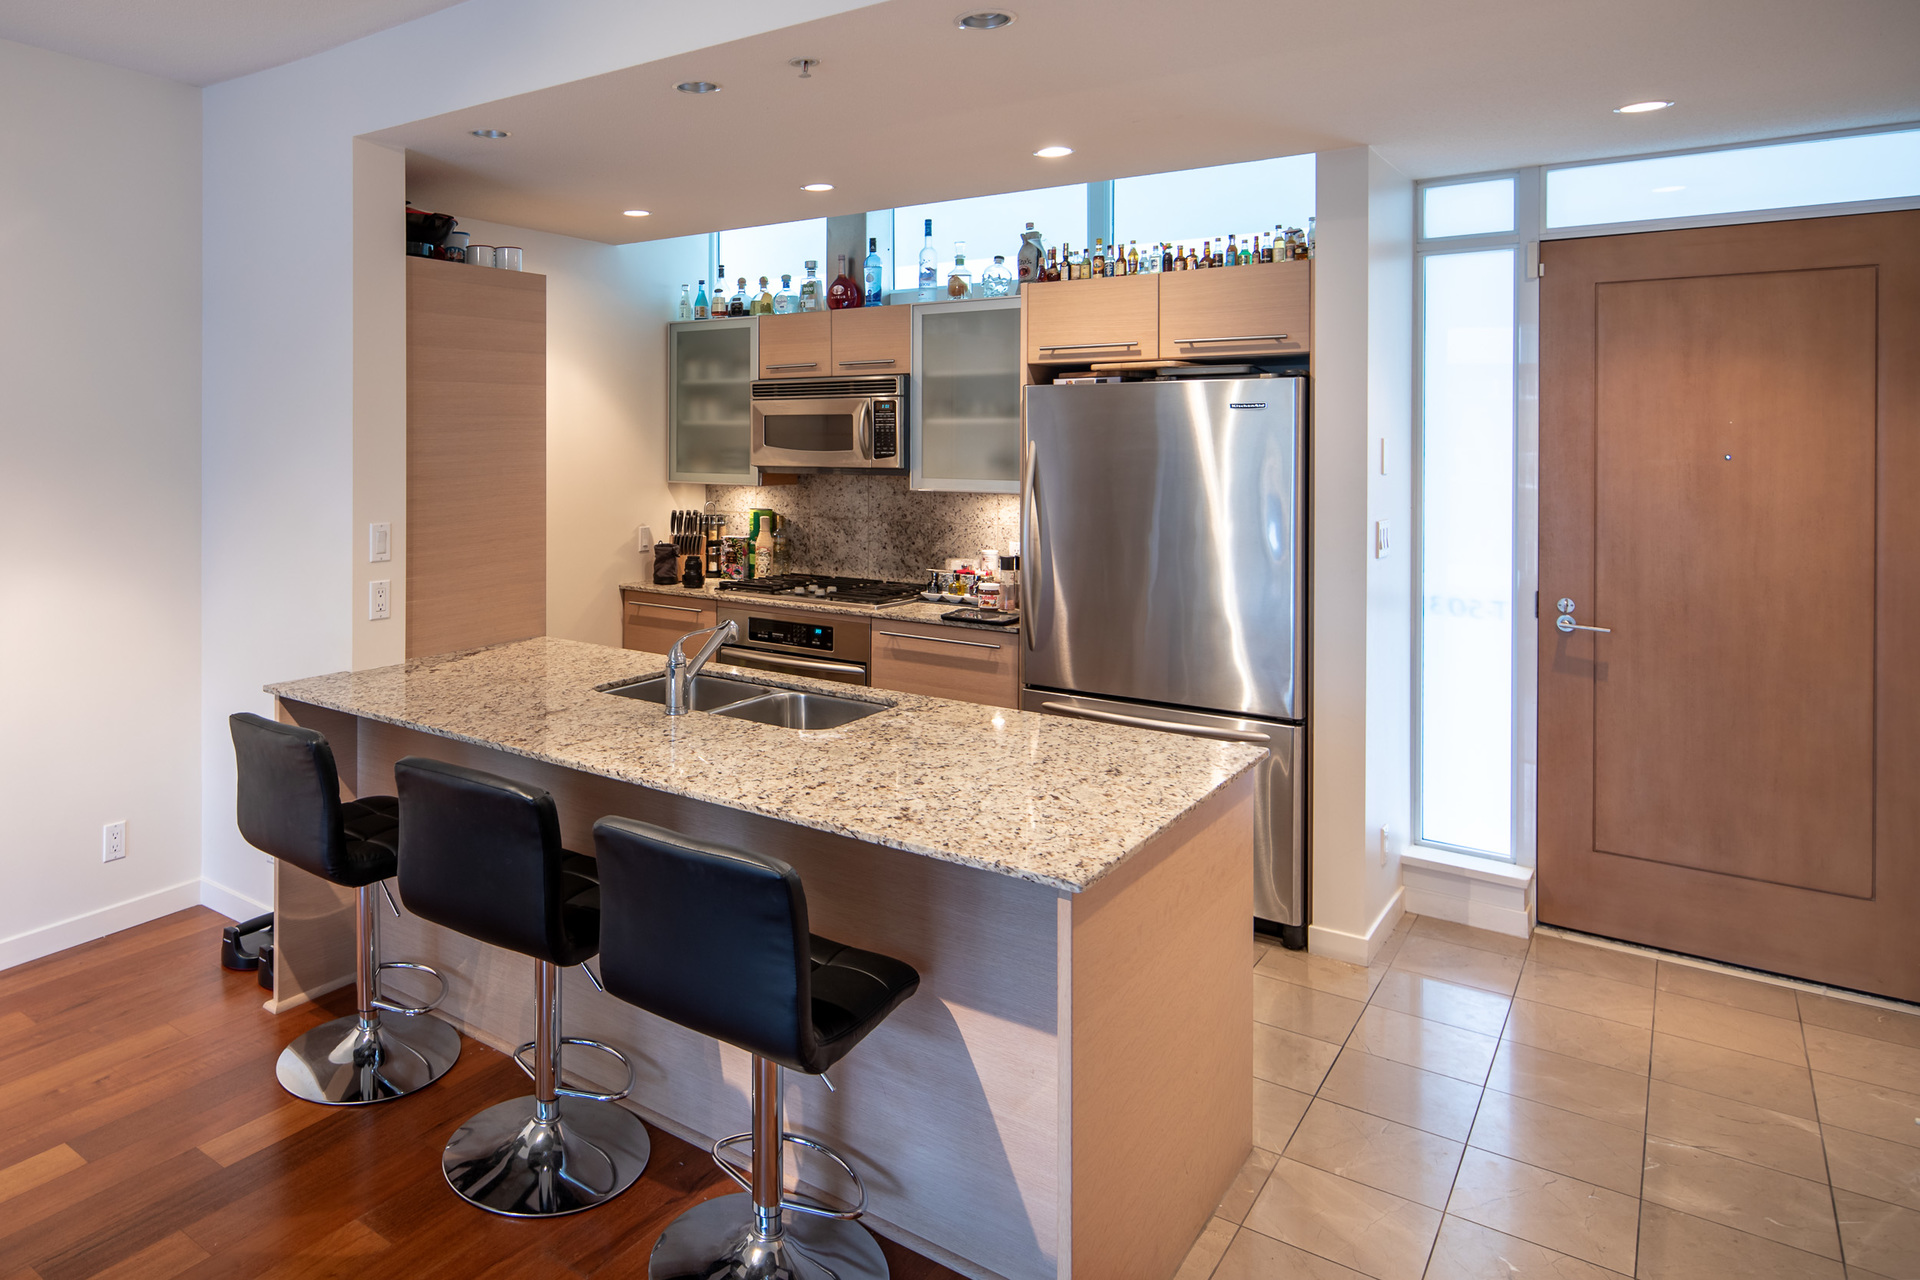 Stainless Steel Appliances at 503 - 66 Songhees Road, Songhees, Victoria West